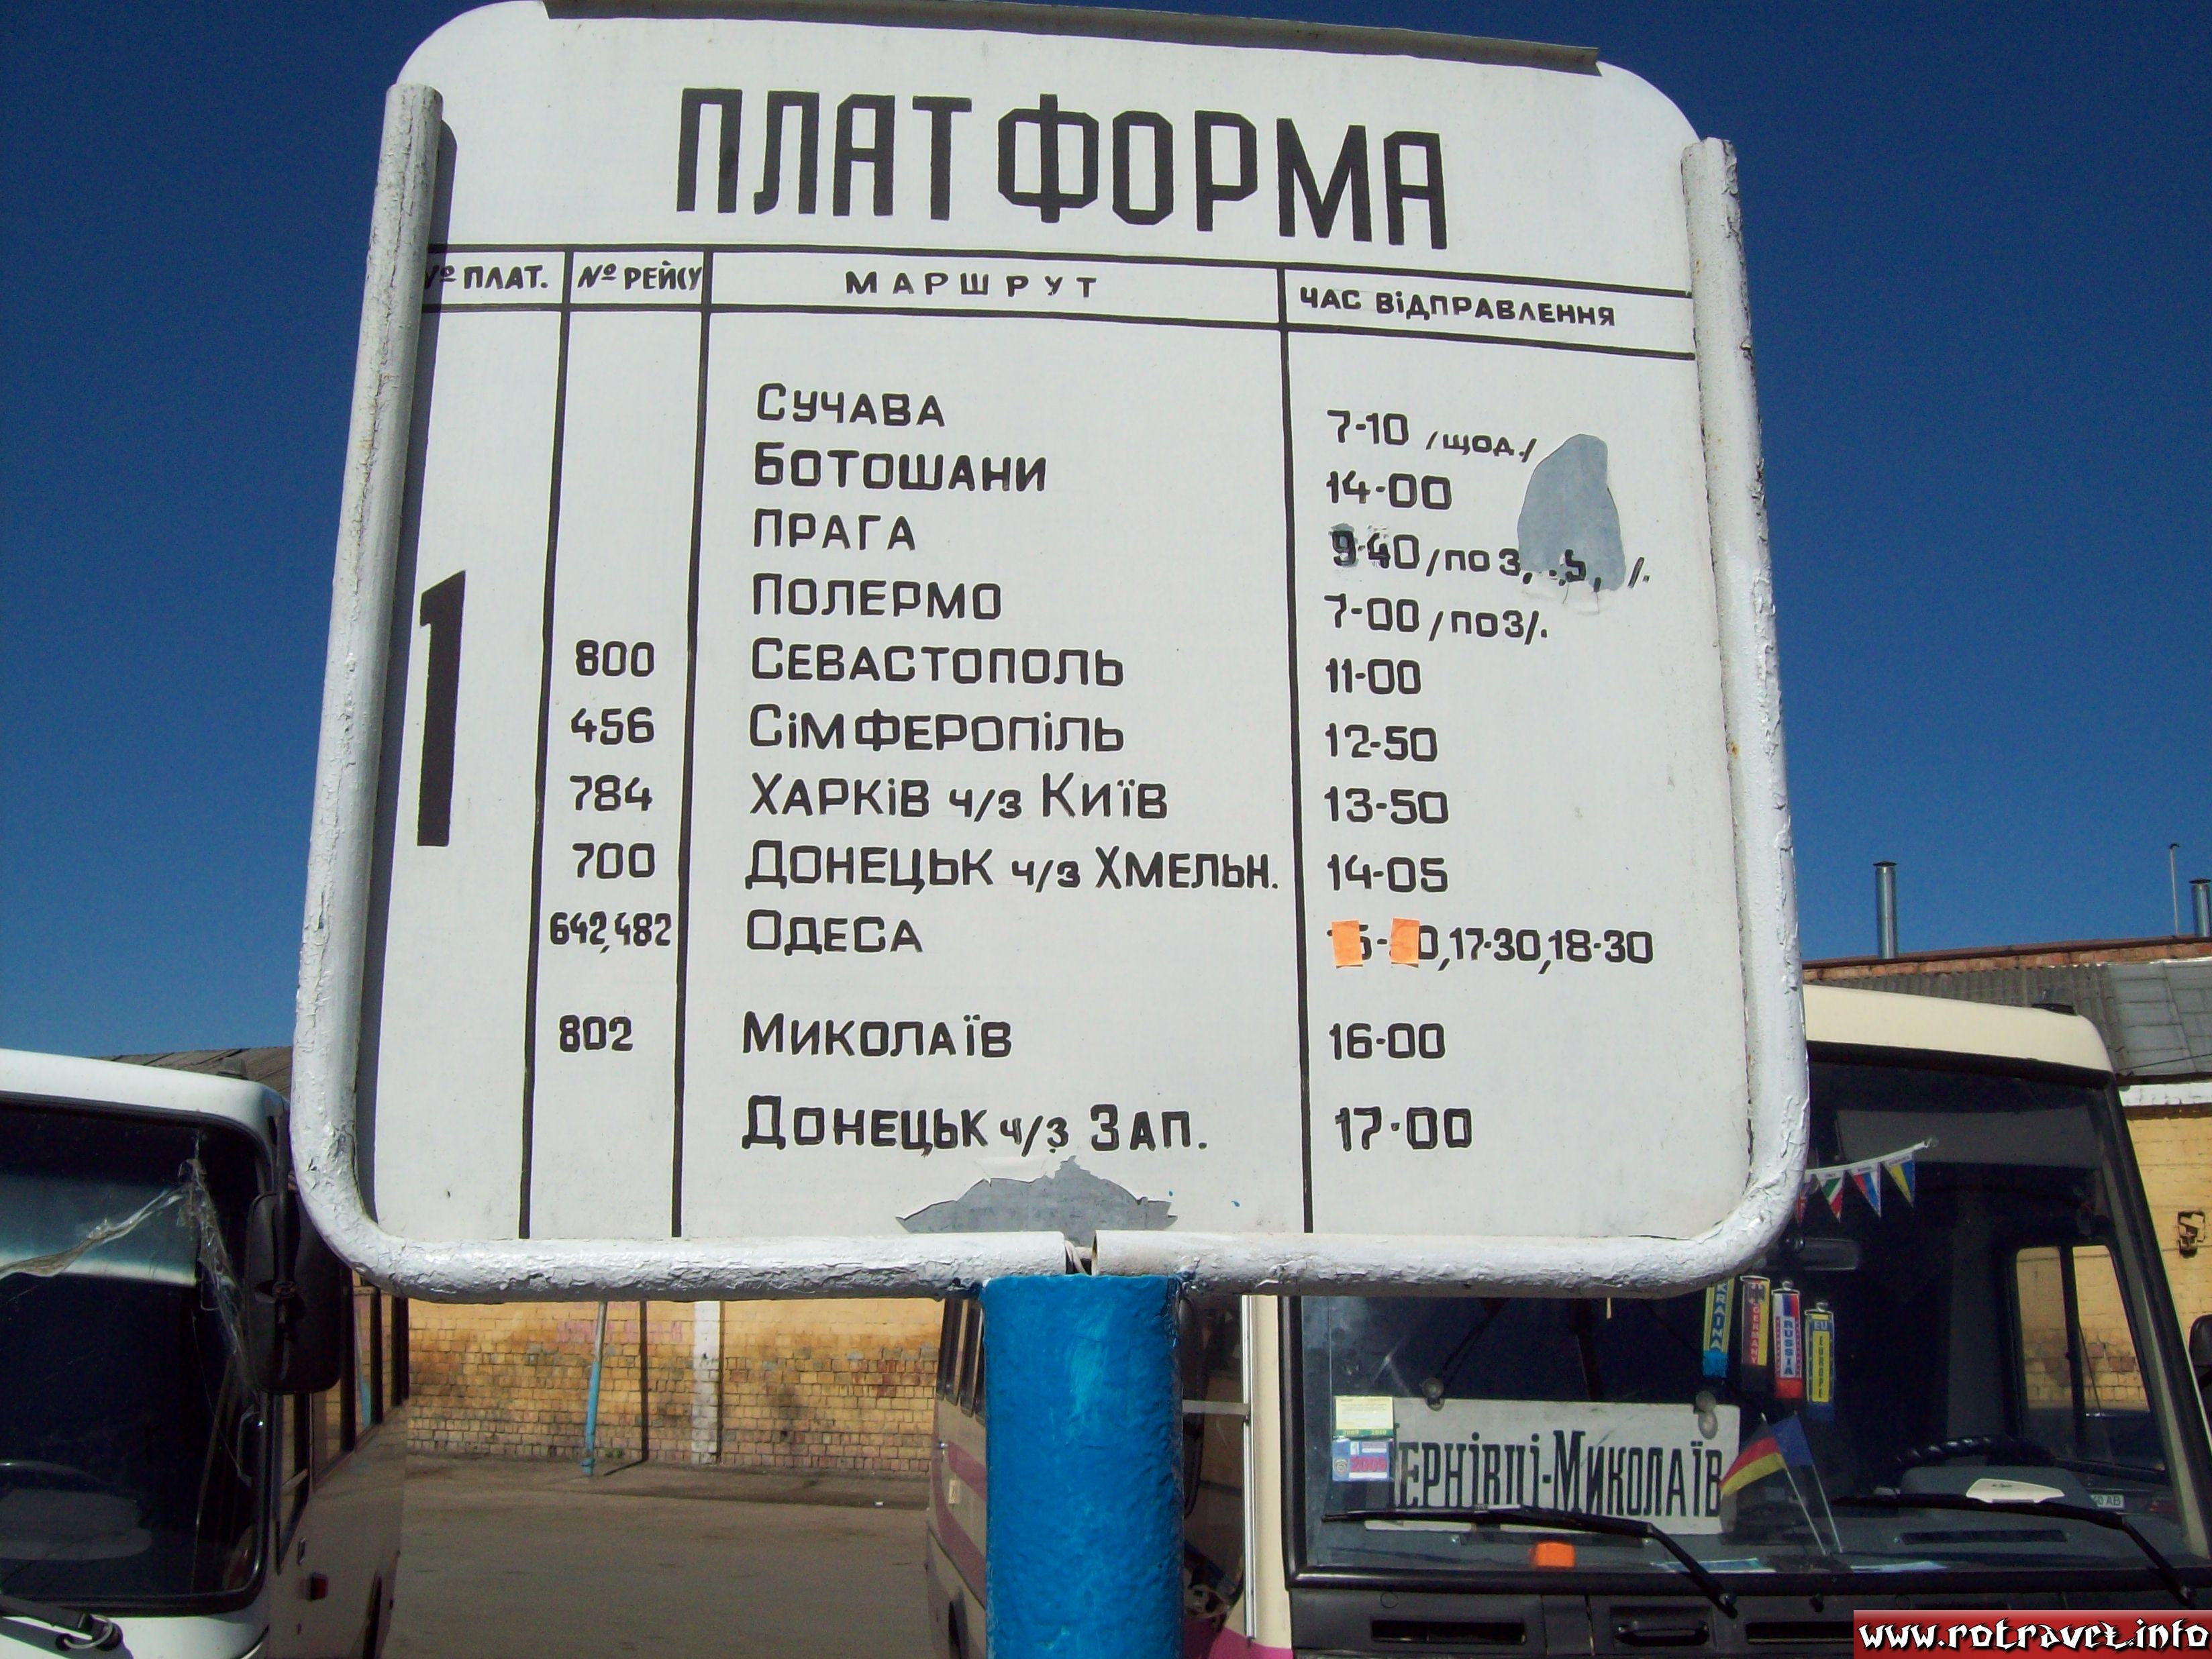 Timetable in Central Bus Station from Chernivtsi